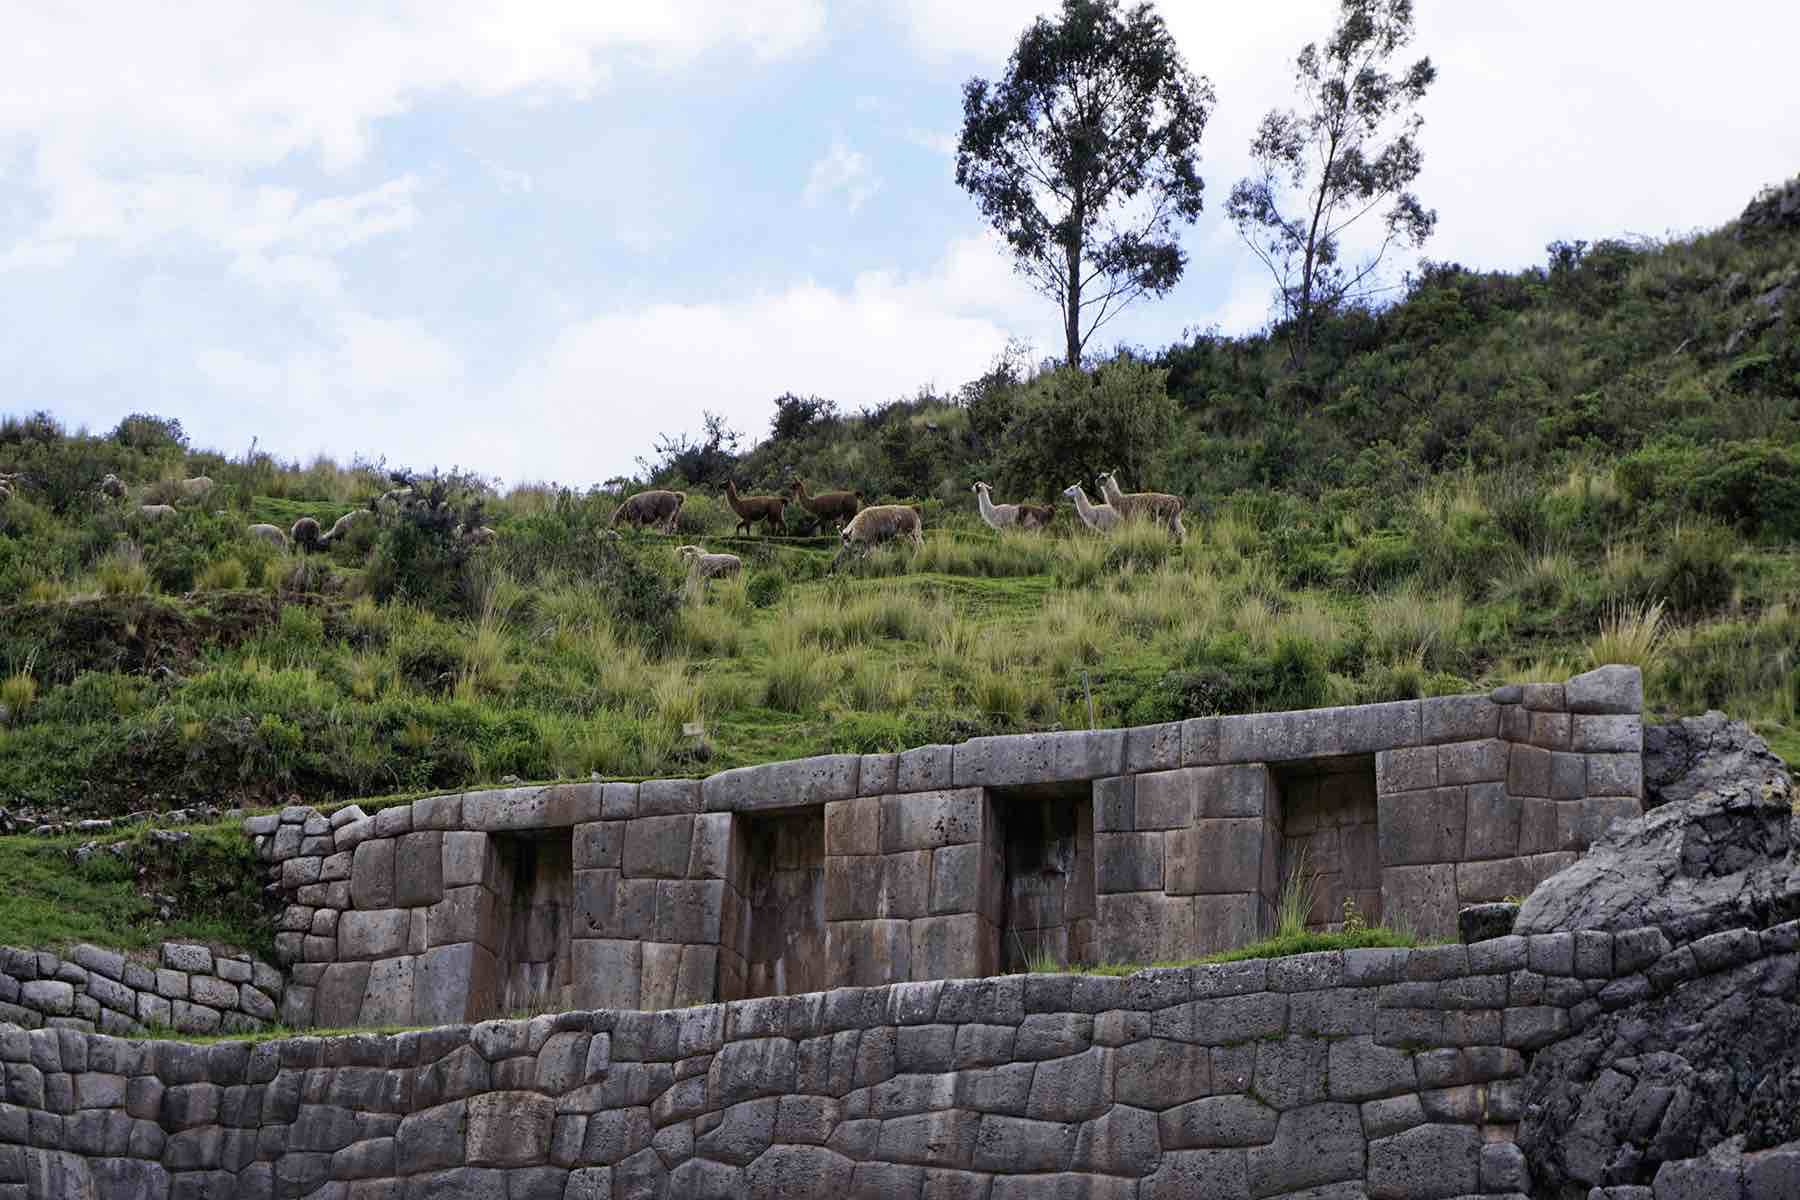 llamas at the Tambomachay Inca ruins near Cusco  | Lesser Known Inca Sites in the Sacred Valley of Peru